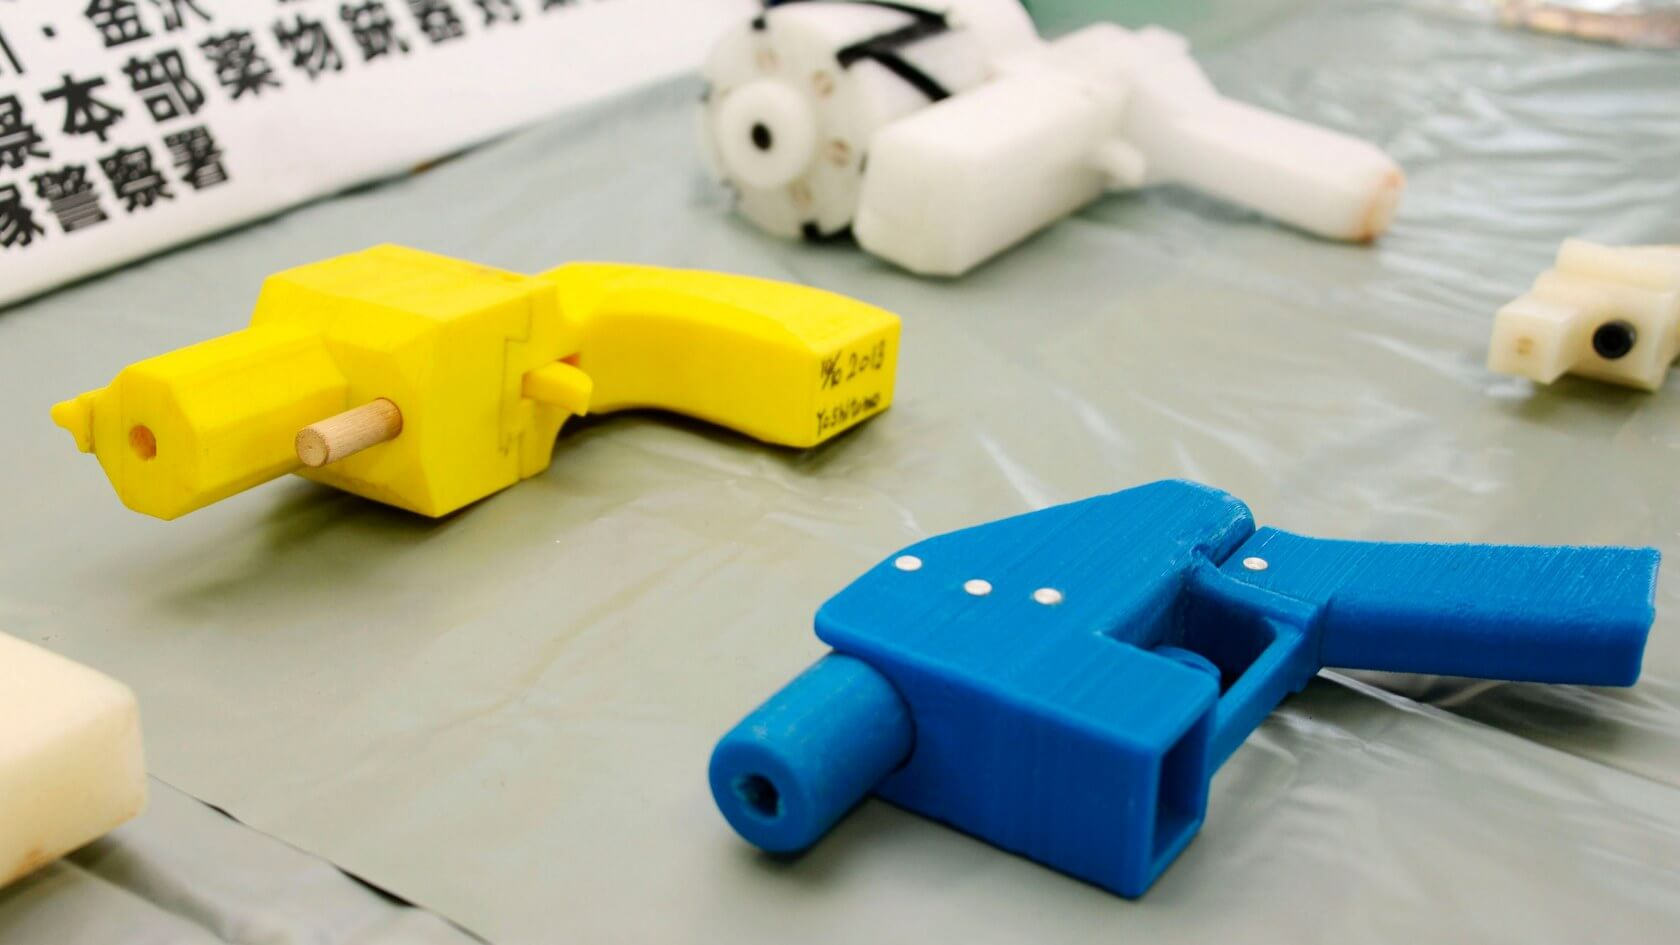 Federal judge blocks release of plans for 3D-printed guns